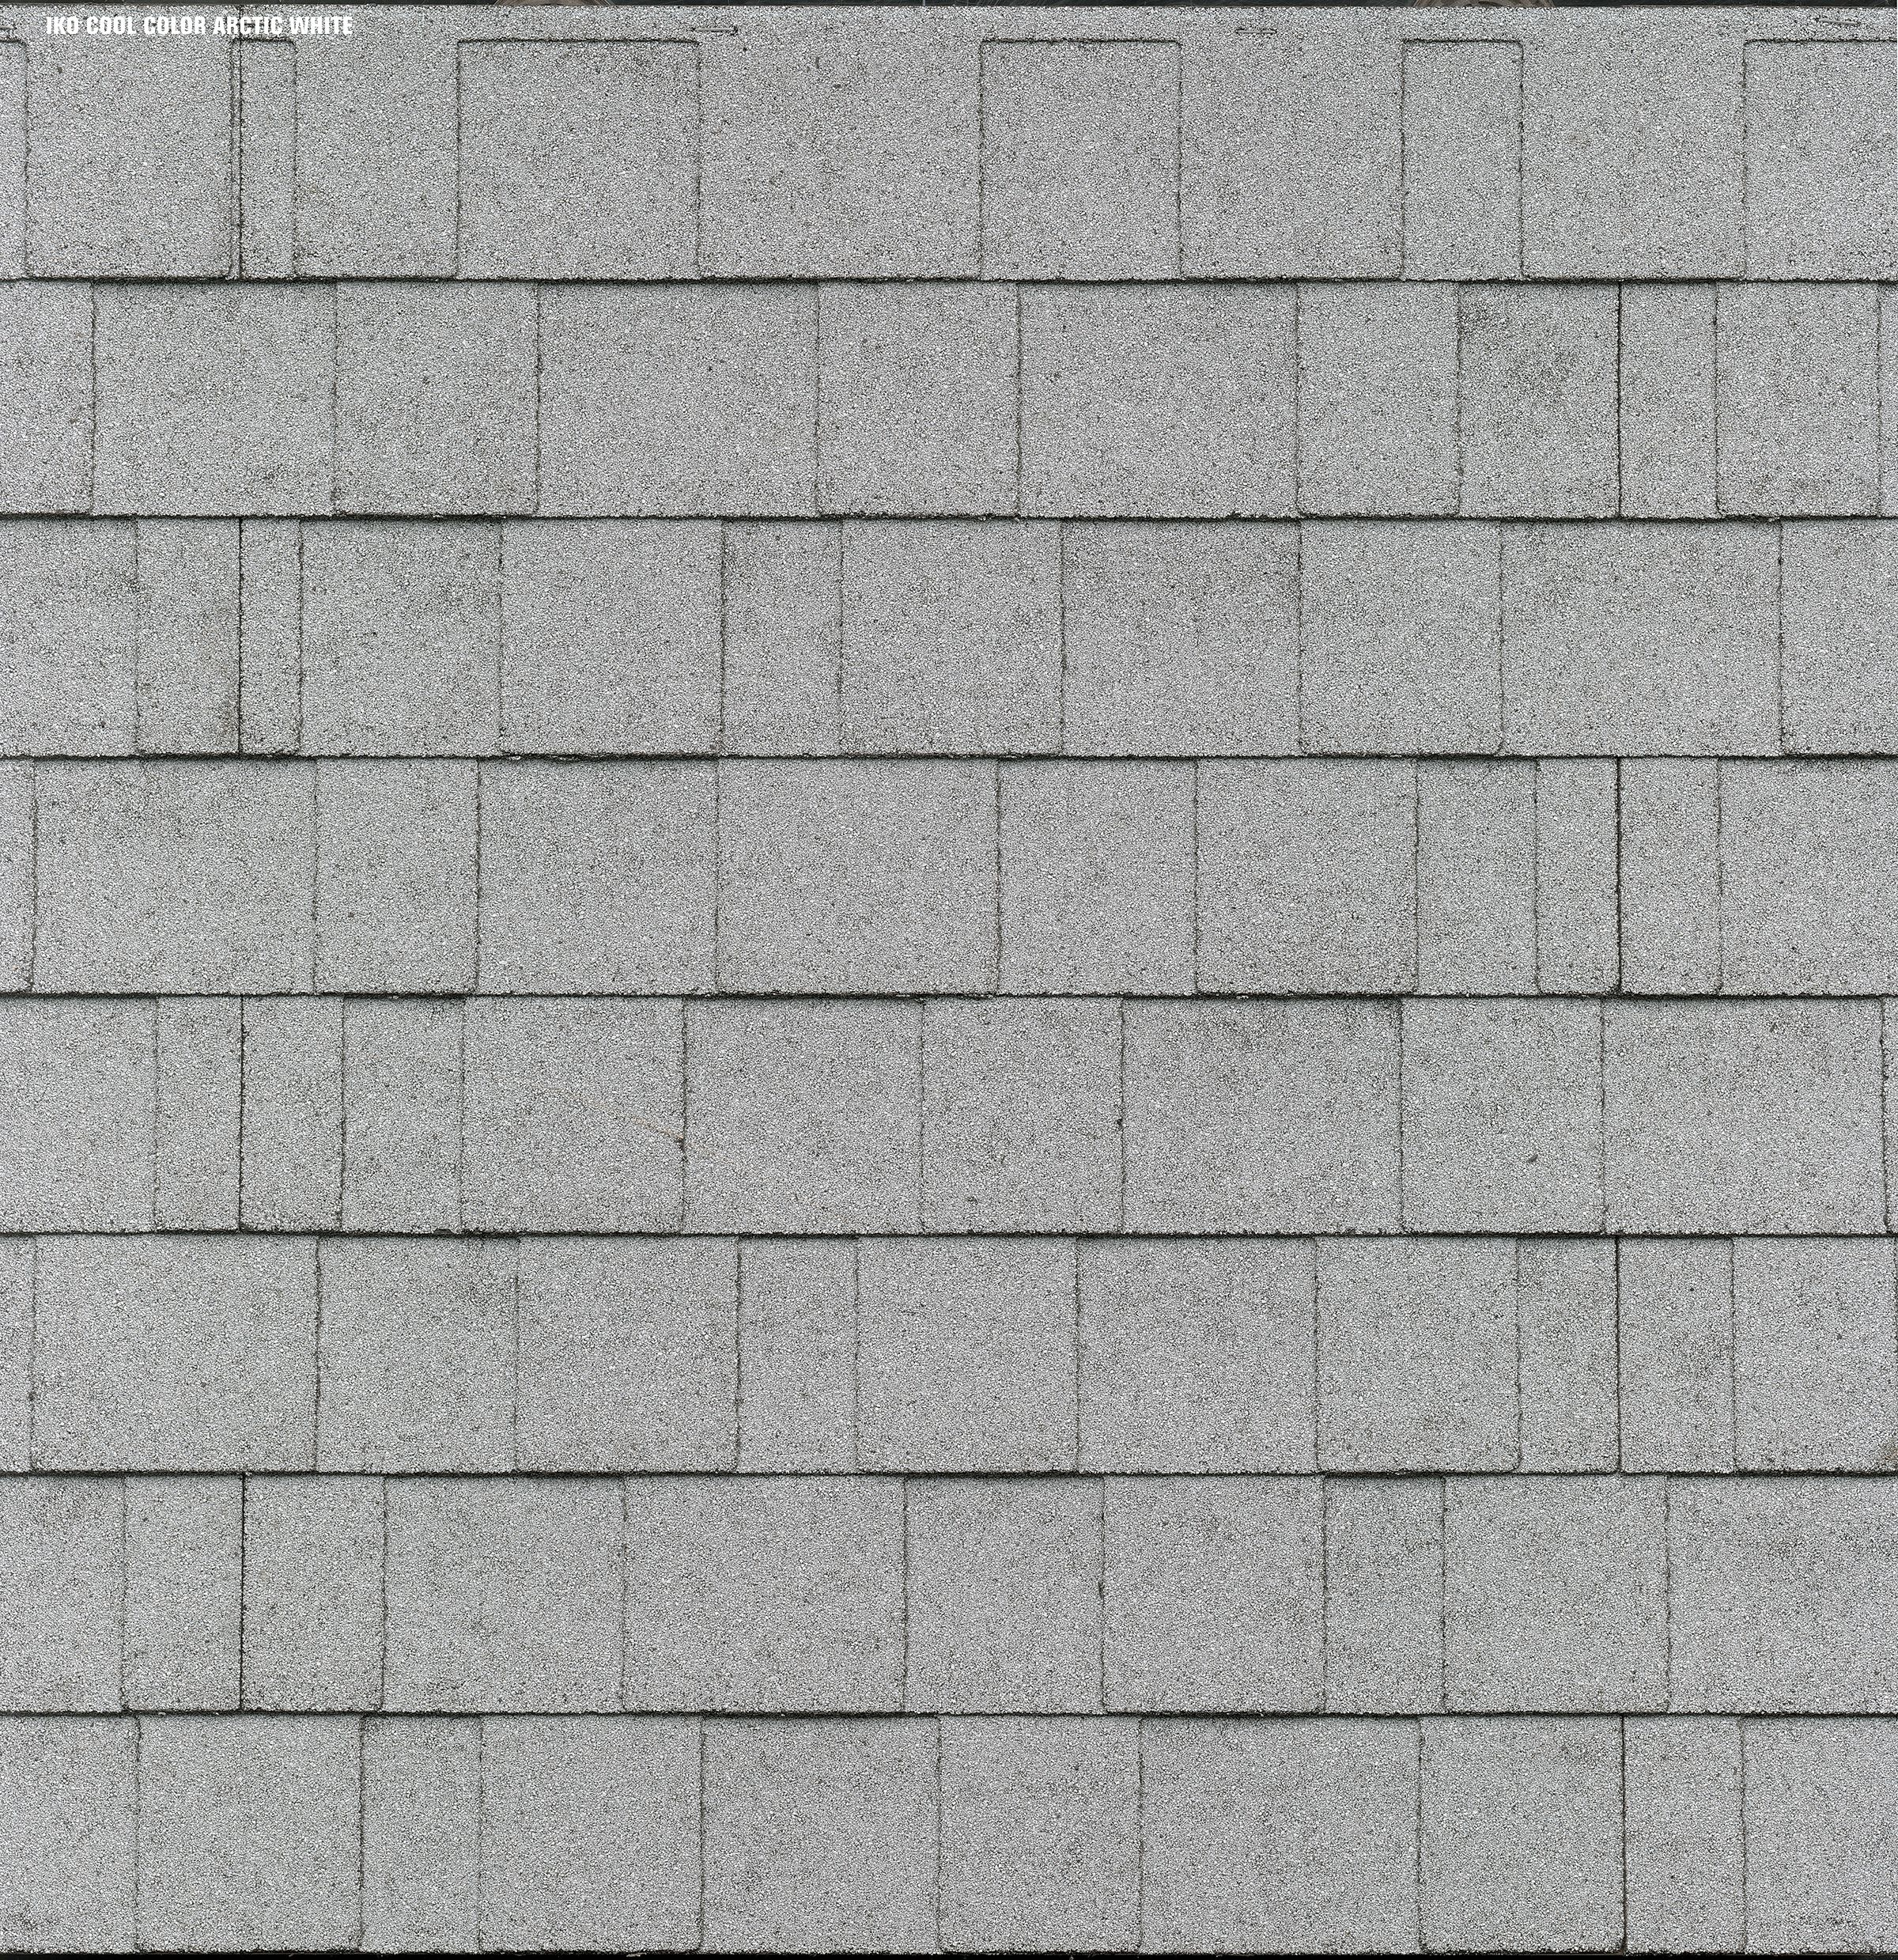 Iko Cambridge Cool Color Arctic White Swatch In 2020 Cool Roof Shingling Shingle Colors